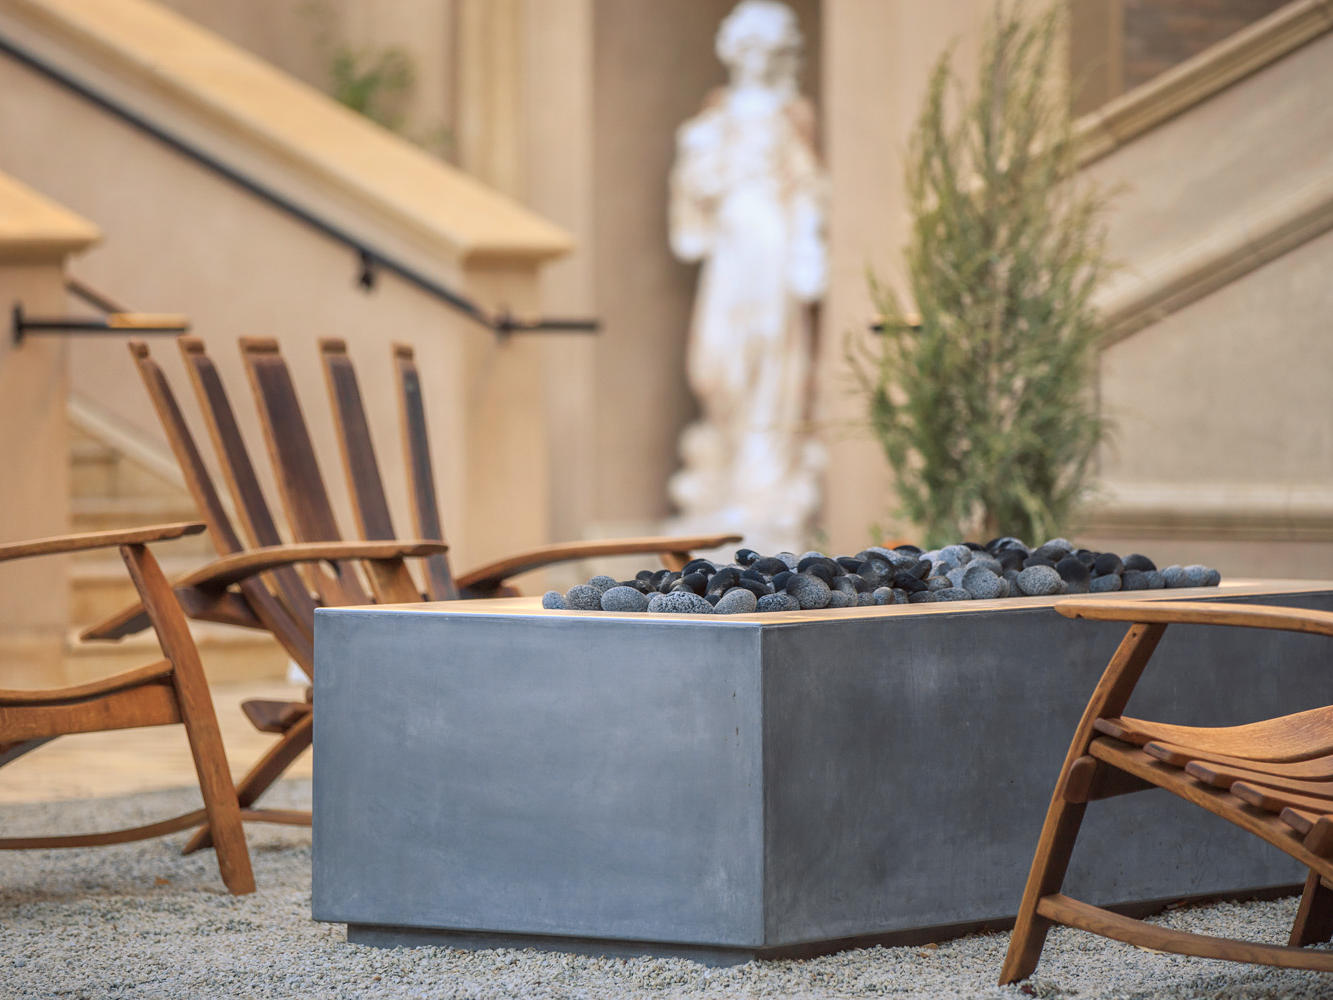 Fire pit and chairs with sculpture in the back